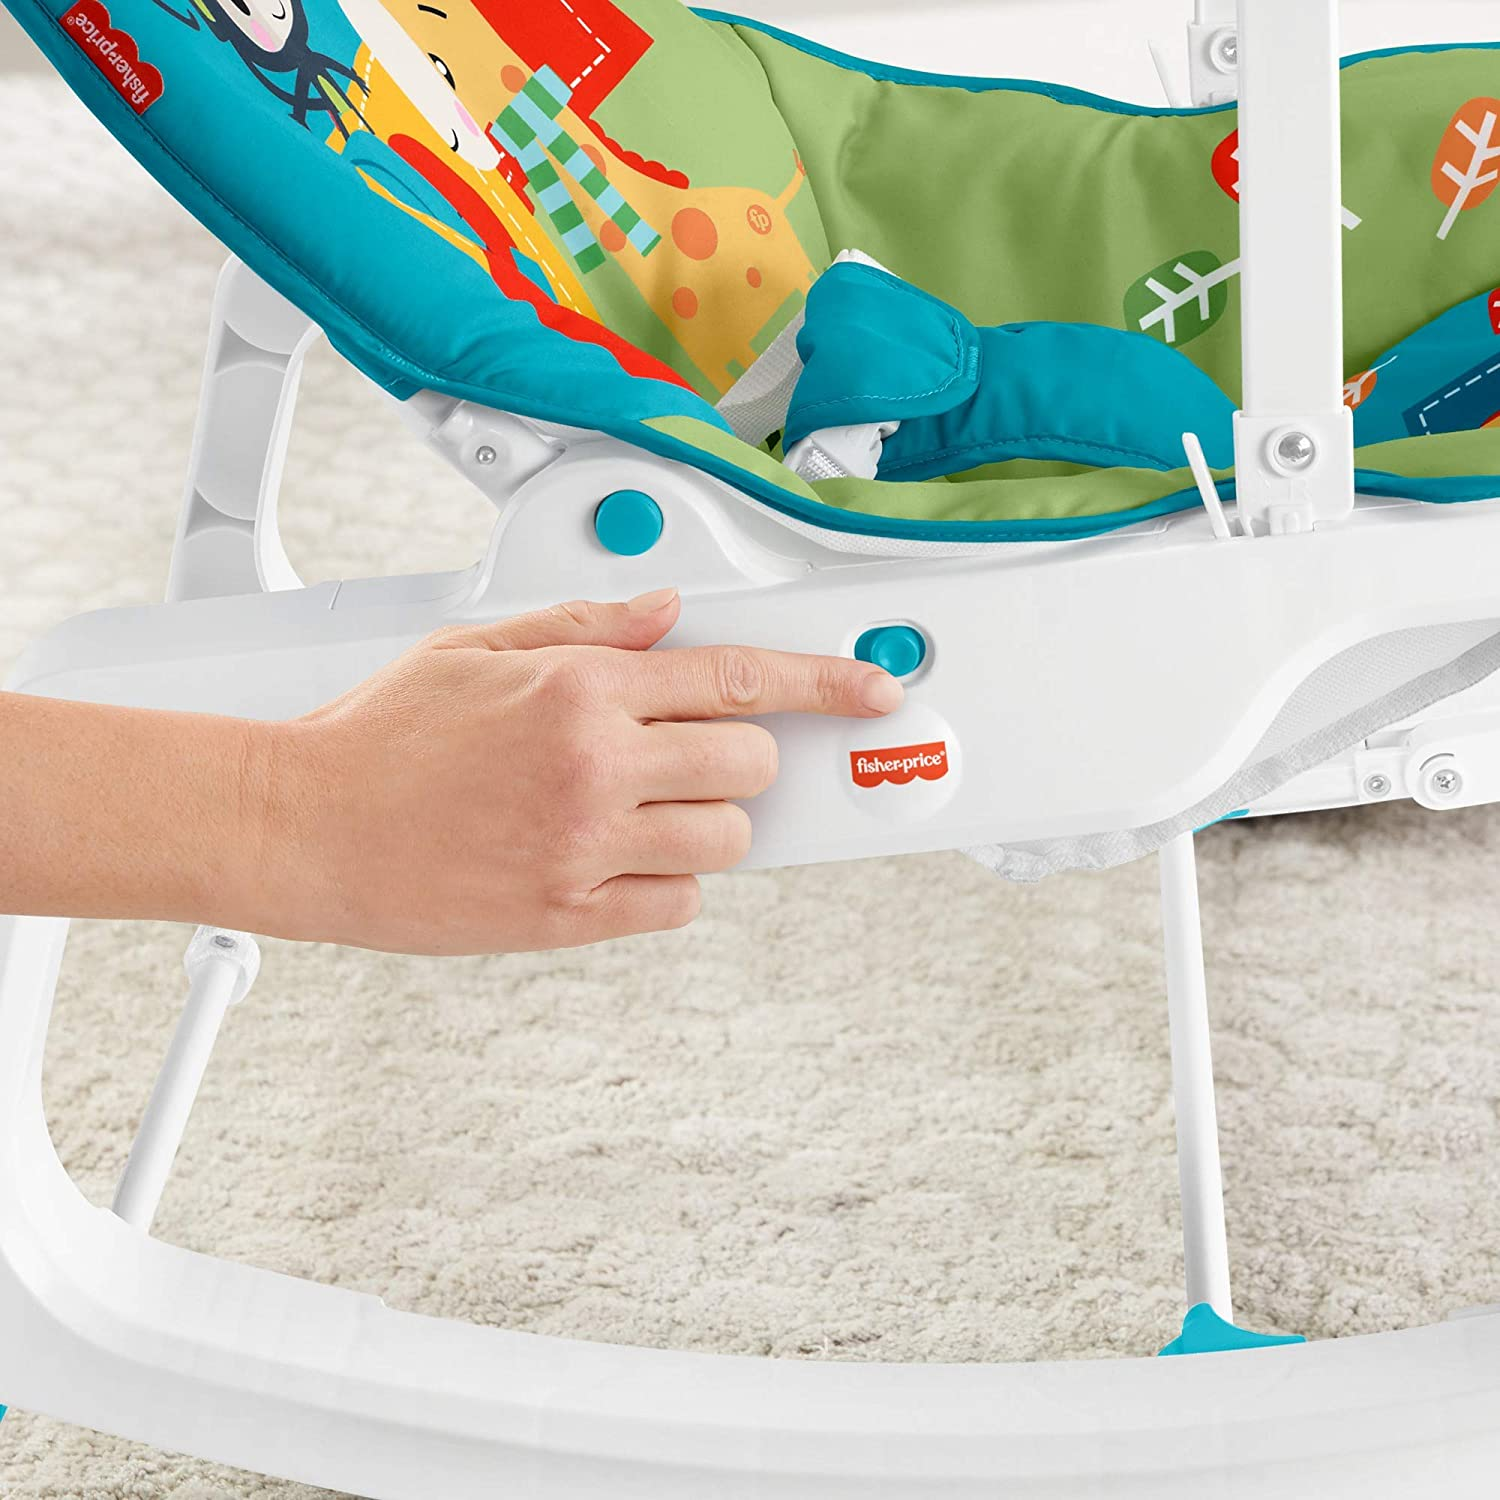 ghdonat.com Baby Bouncers Baby Rocking Chair with Toys for ...